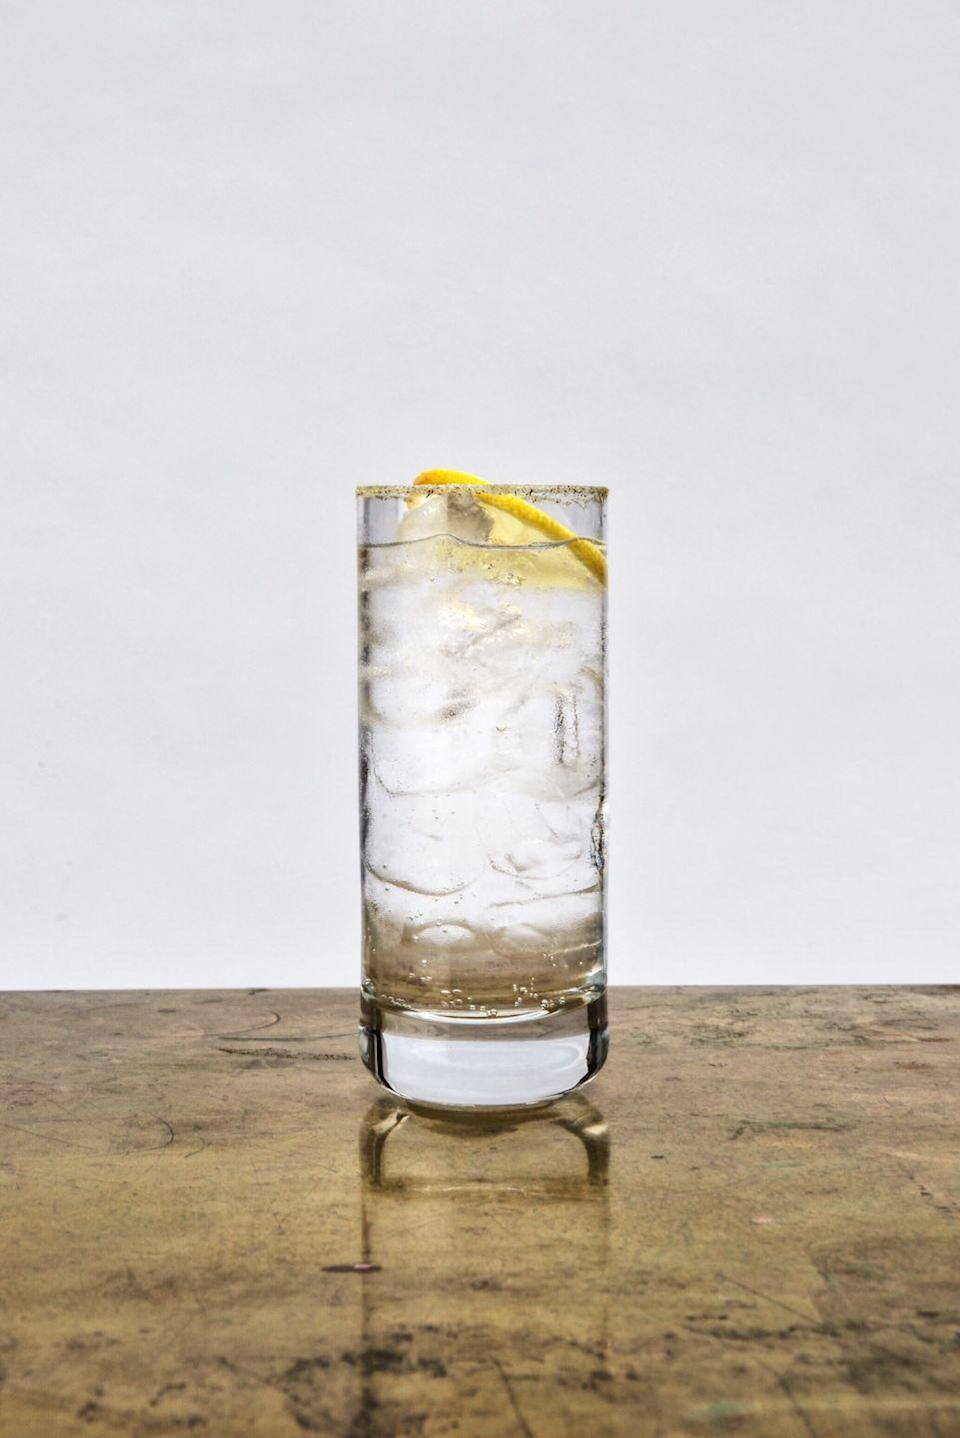 """<p><a href=""""https://www.hepplespirits.com/"""" rel=""""nofollow noopener"""" target=""""_blank"""" data-ylk=""""slk:Hepple"""" class=""""link rapid-noclick-resp"""">Hepple</a> is a slow gin distillery based in the Northumberland Moors, one of Britain's last wild sanctuaries for juniper to grow freely. As a result of the landscape, juniper is the main focus on this very traditional gin. Hepple has also created an ultimate G&T which uses its gin, any light tonic and its specially created Douglas fir sherbet around the rim, which is made from Douglas fir needles. The sherbet lends a tang to the bitter juniper and lifts the taste beautifully. </p><p>Pair it with <a href=""""https://www.navasdrinks.com/mixers/soda-water"""" rel=""""nofollow noopener"""" target=""""_blank"""" data-ylk=""""slk:Navas soda water"""" class=""""link rapid-noclick-resp"""">Navas soda water</a> for an earthy and leafy G&T. Crafted with the aim of heightening, not overpowering, Navas showcases the provenance of ingredients and celebrate heritage. Completely natural, Navas mixers are made from a blend of the finest distilled botanicals, natural plant extracts and Cornish spring water. If you want a little more flavour, add a few drops of Butler and Brewer's elderflower, cucumber and apple tonic-enhancer.</p>"""